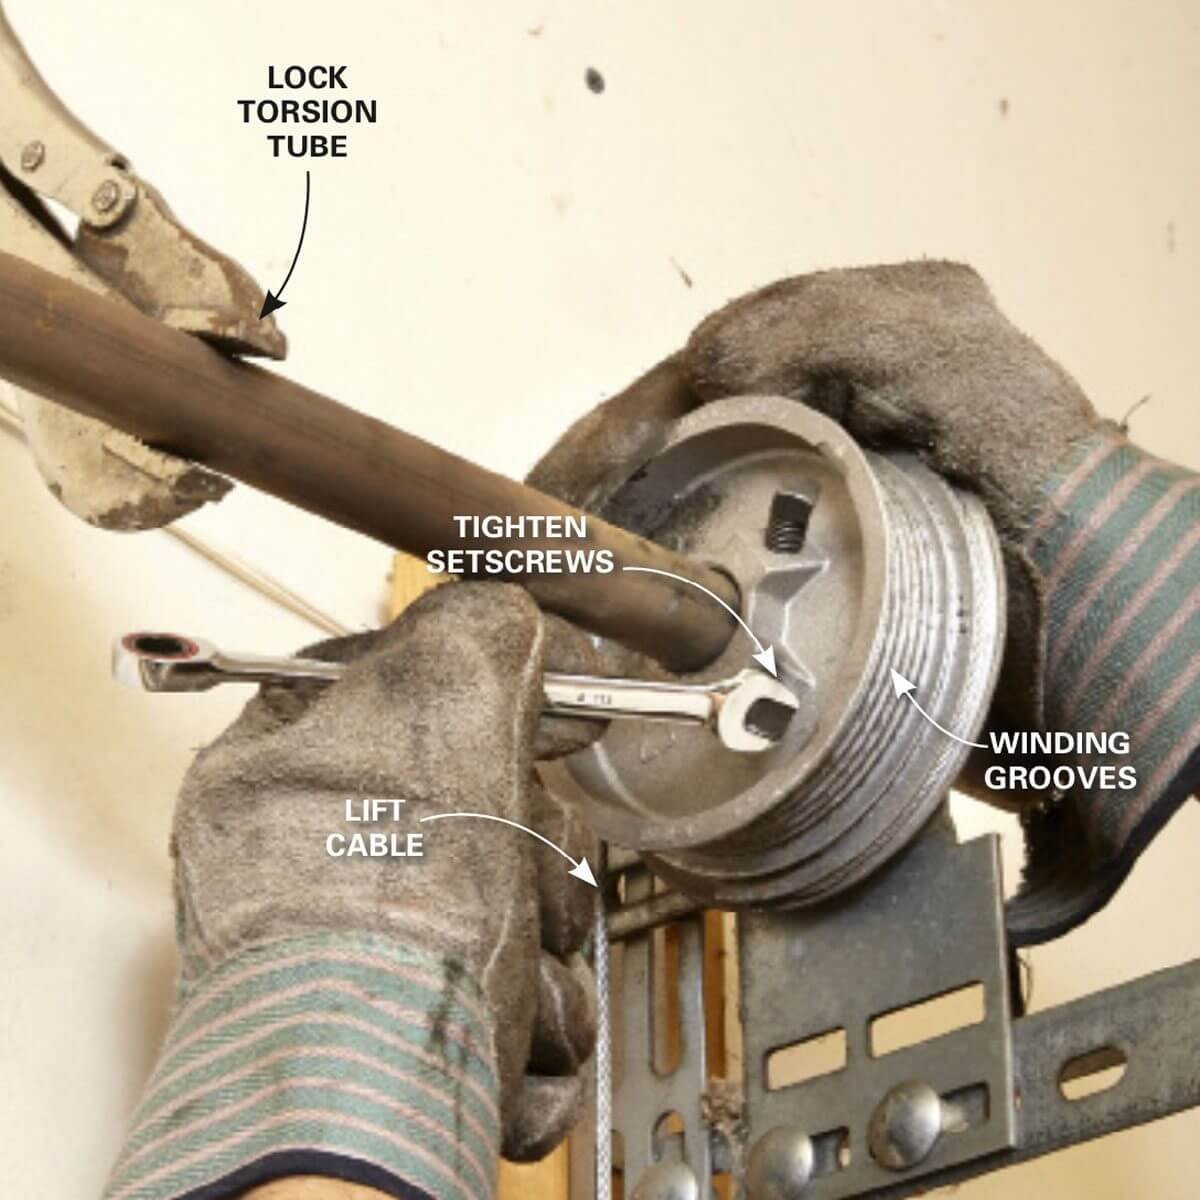 INSERTING CABLES AND TIGHTENING DRUMS TO INSTALL GARAGE DOOR SPRING